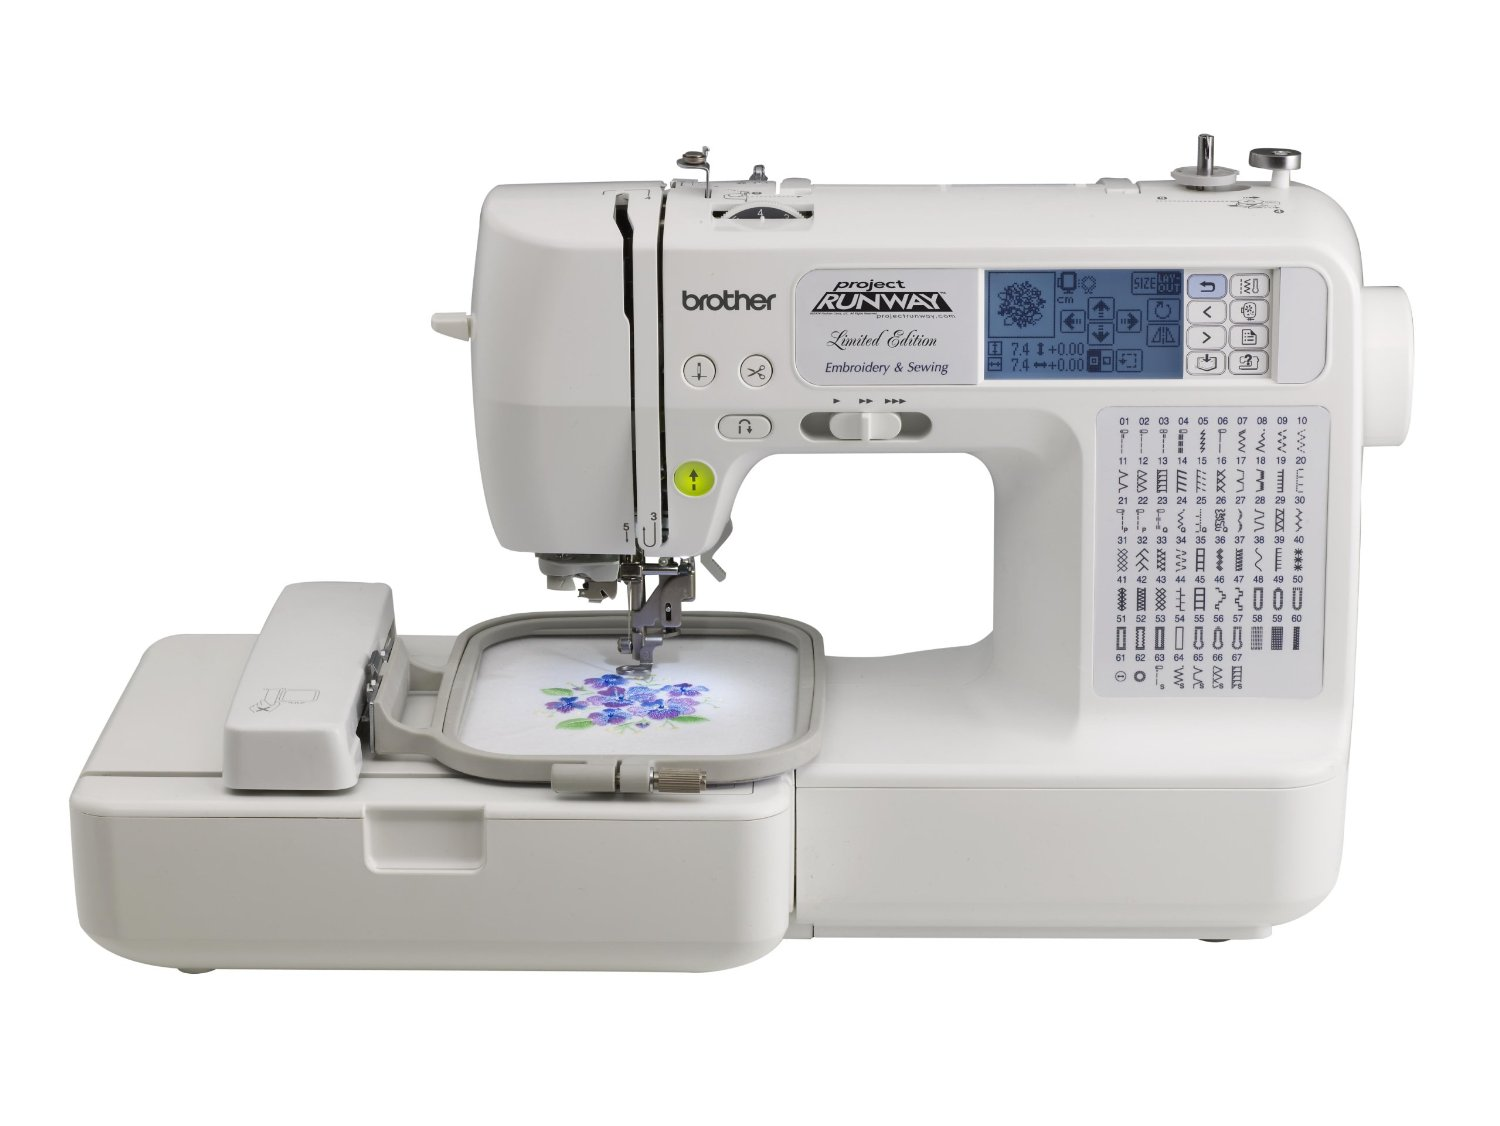 How to Choose a Home Embroidery Machine?